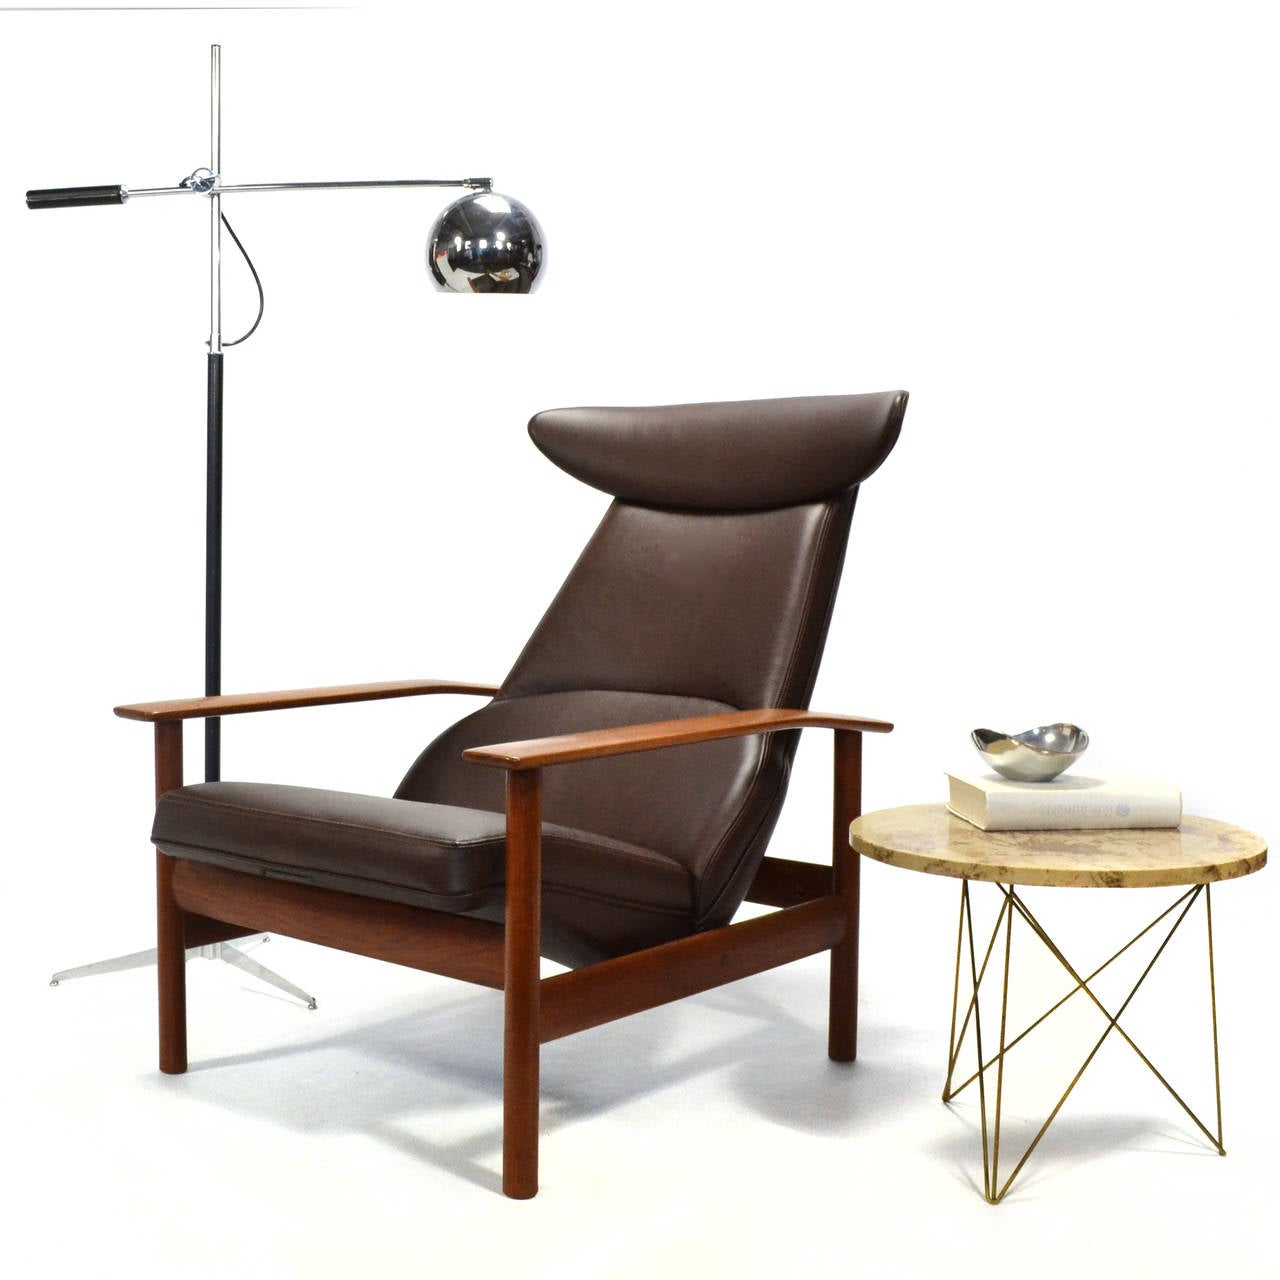 Sven Ivar Dysthe Reclining Lounge Chair For Sale 3